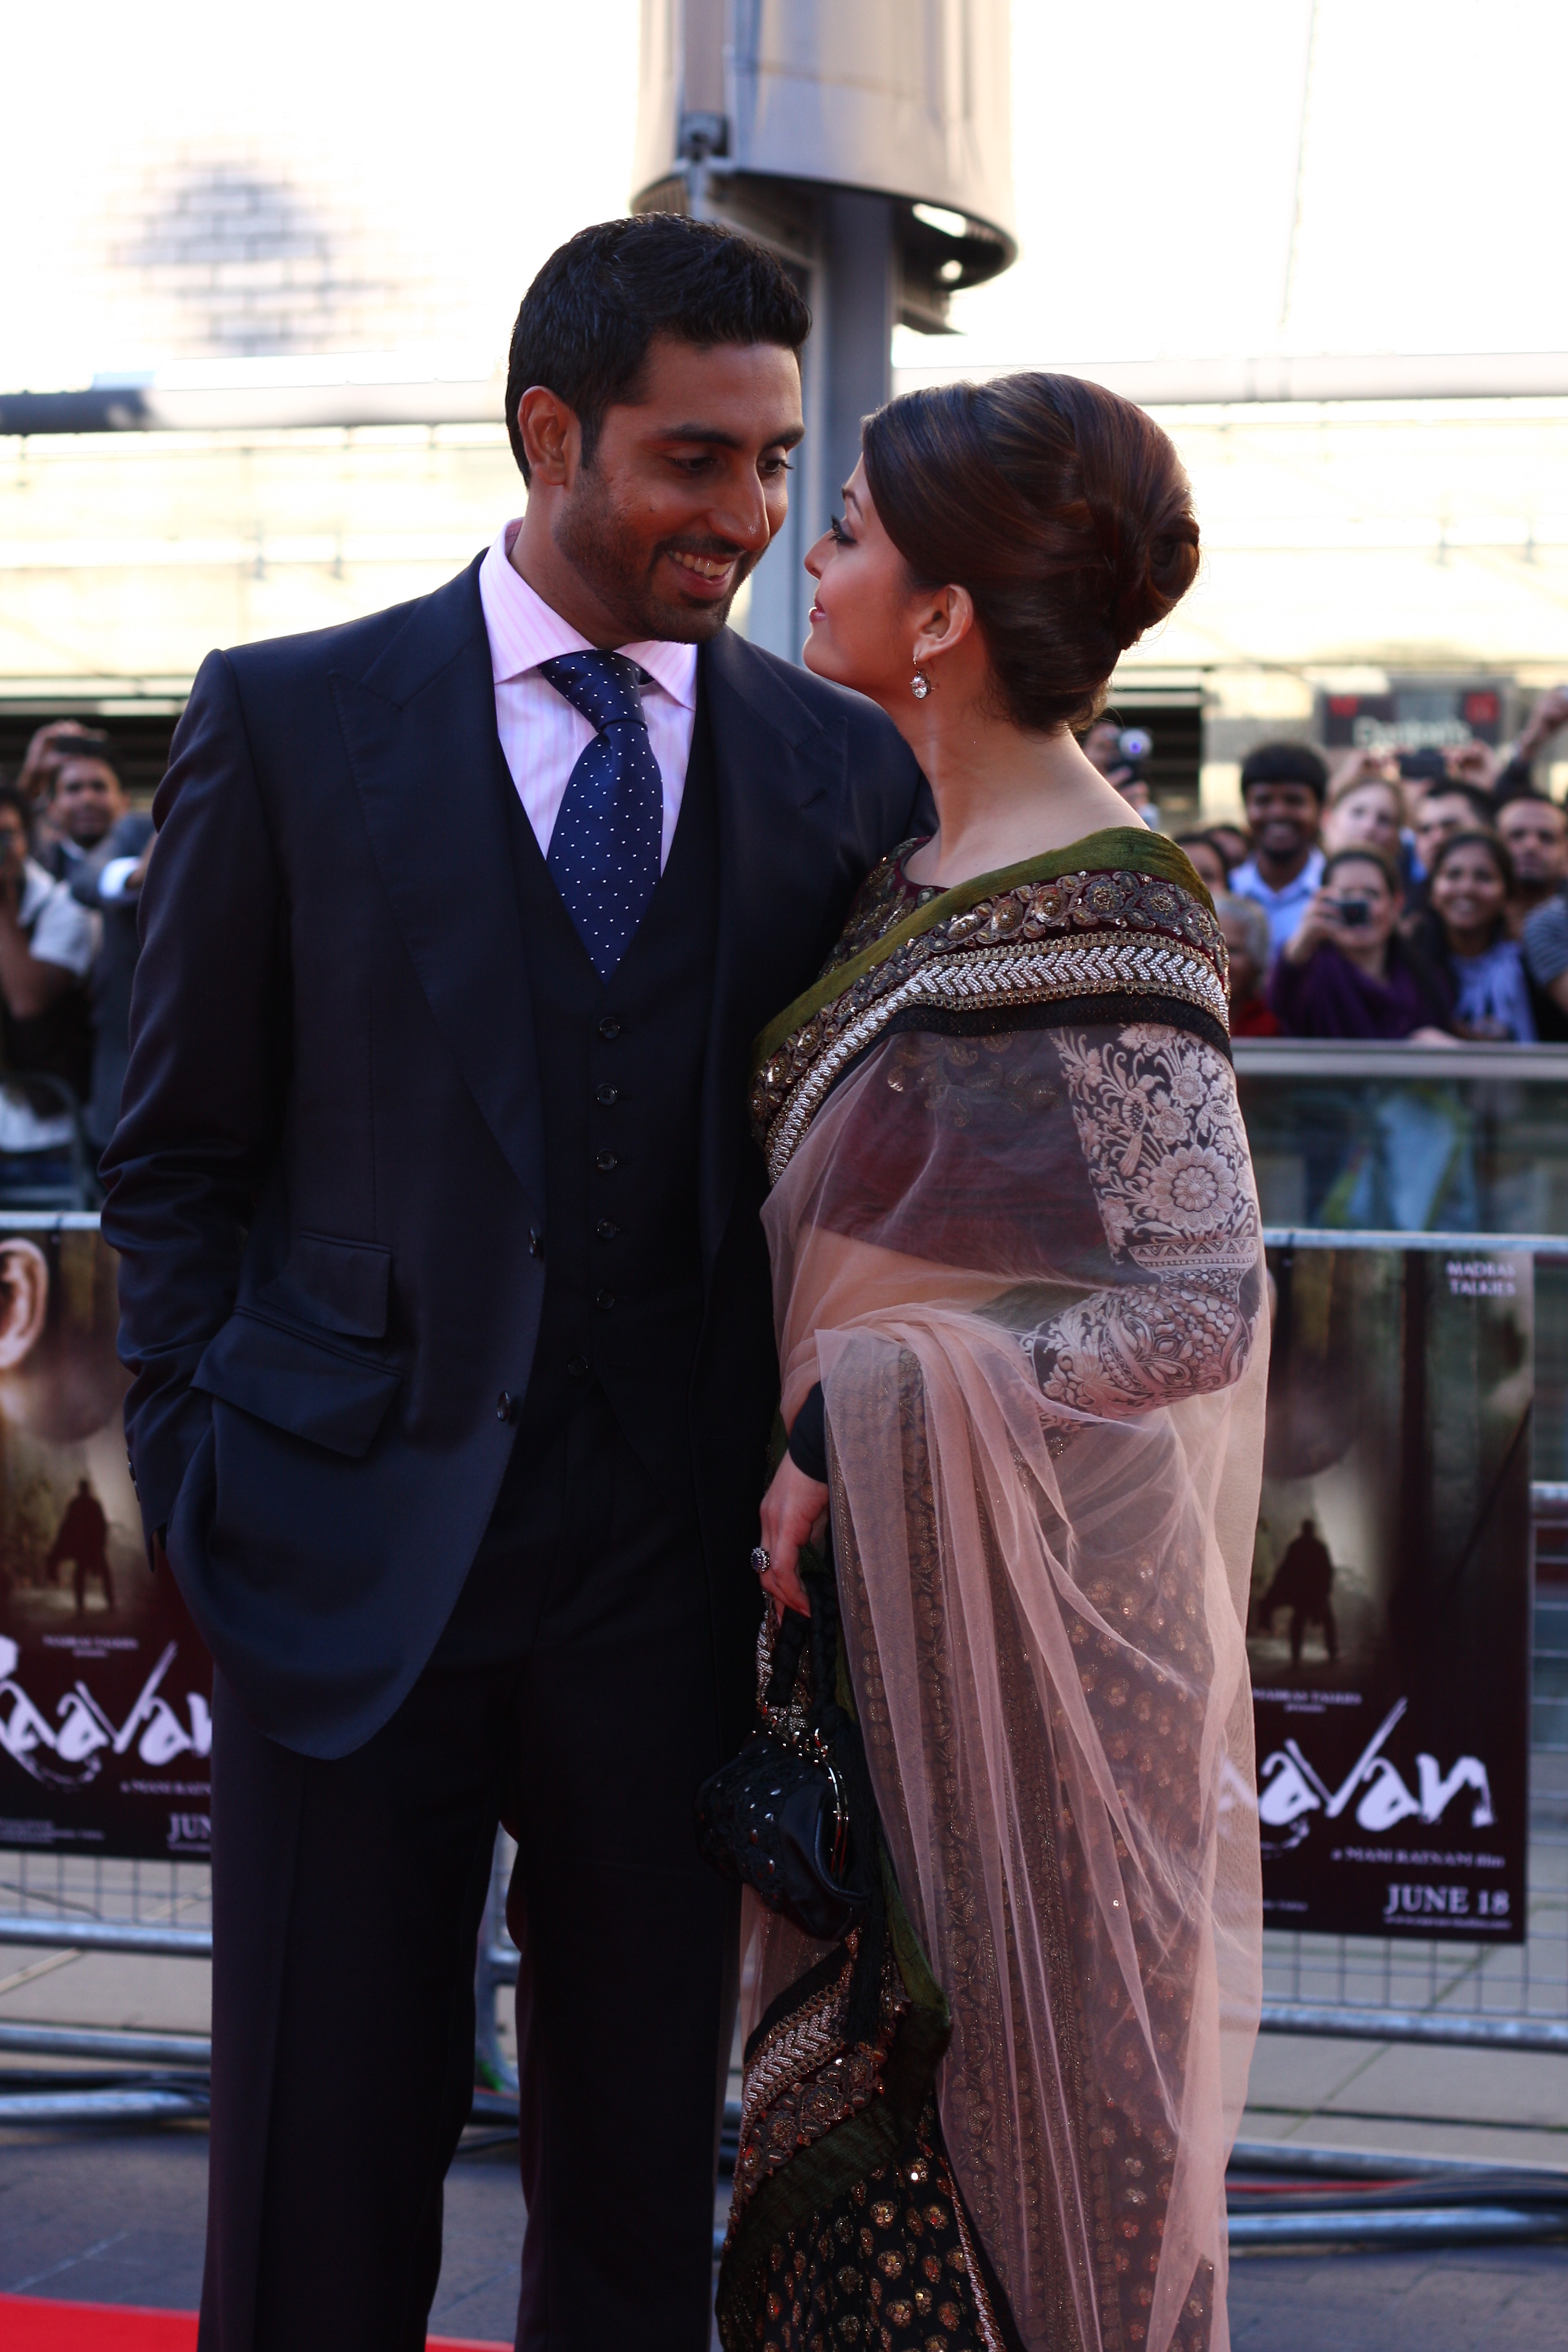 http://upload.wikimedia.org/wikipedia/commons/5/5c/Abhishek_n_Aishwarya_at_Raavan_London_premiere.jpg